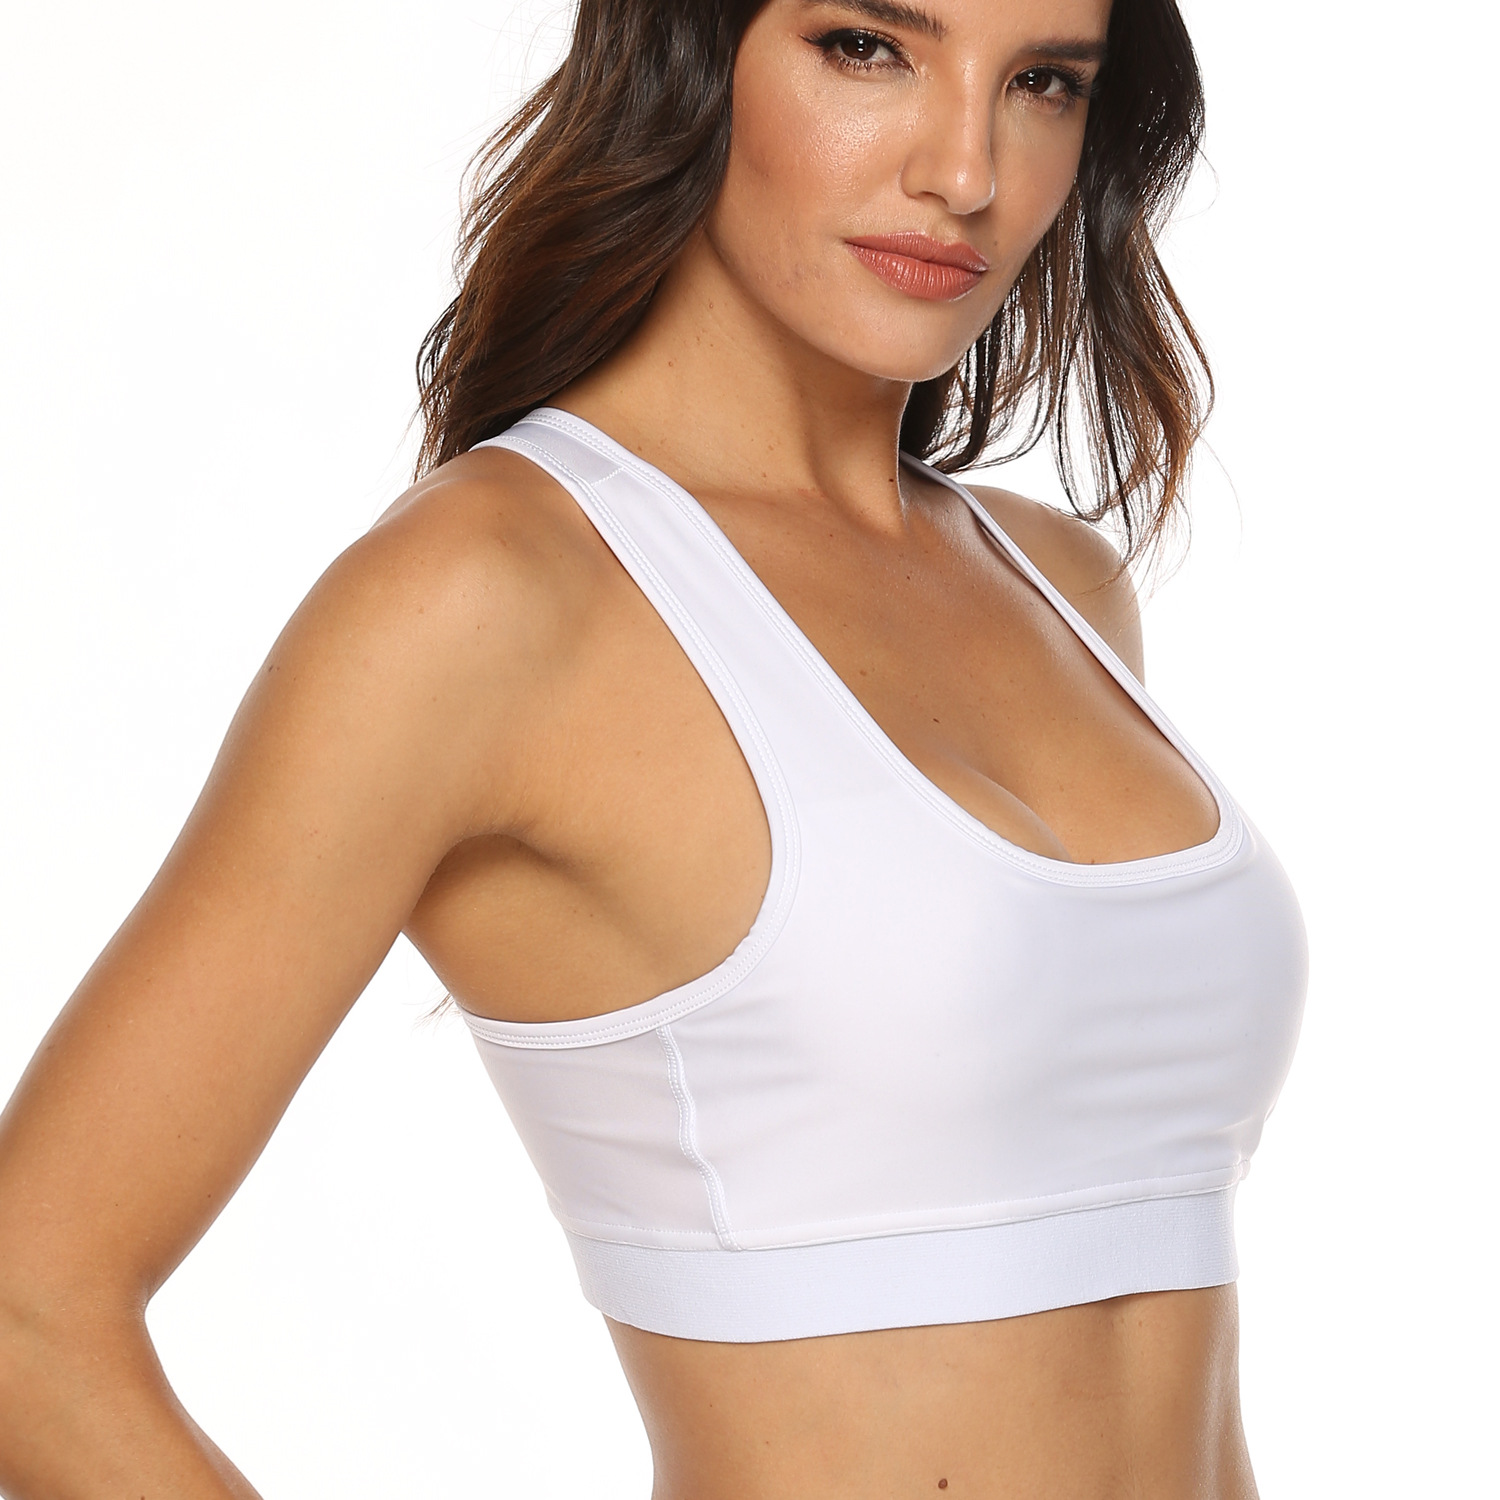 Details about  /Yoga Workout Bra Seamless Solid Brassiere For Women/'s Sports Underwear Clothing